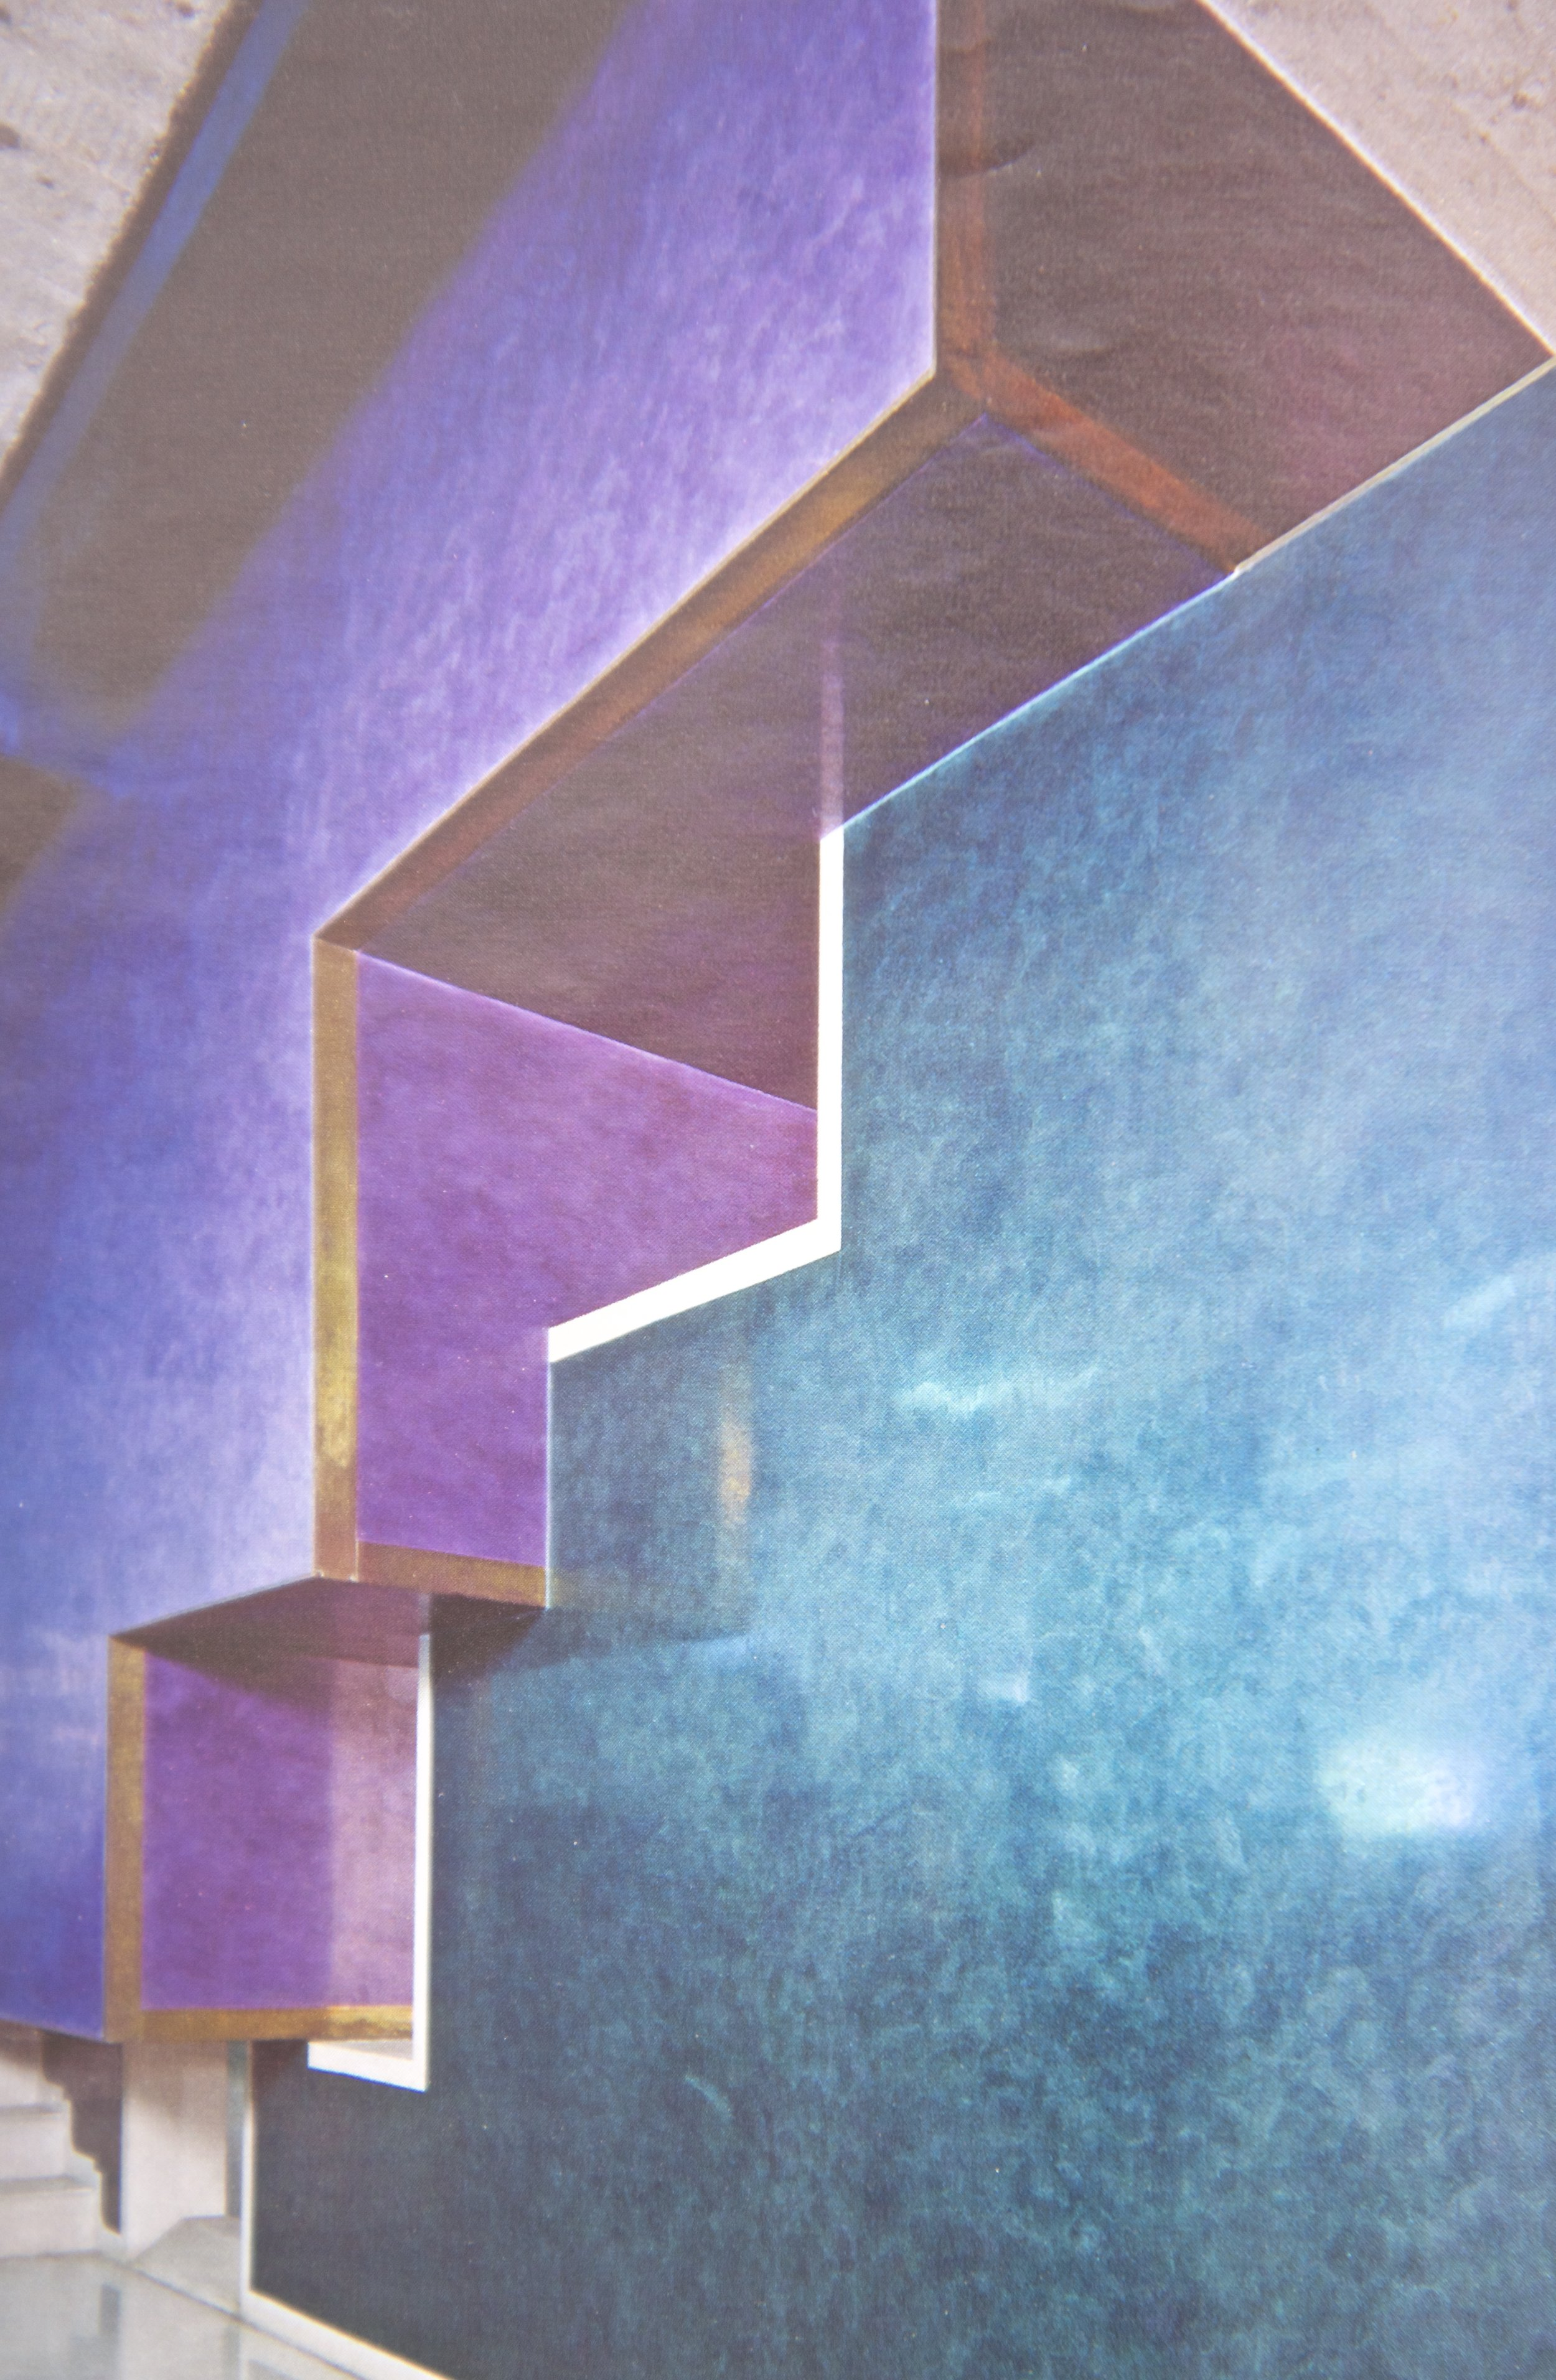 I like the colours and geometric forms here. It's like Kelly Wearstler designed a boutique hotel circa 1985.